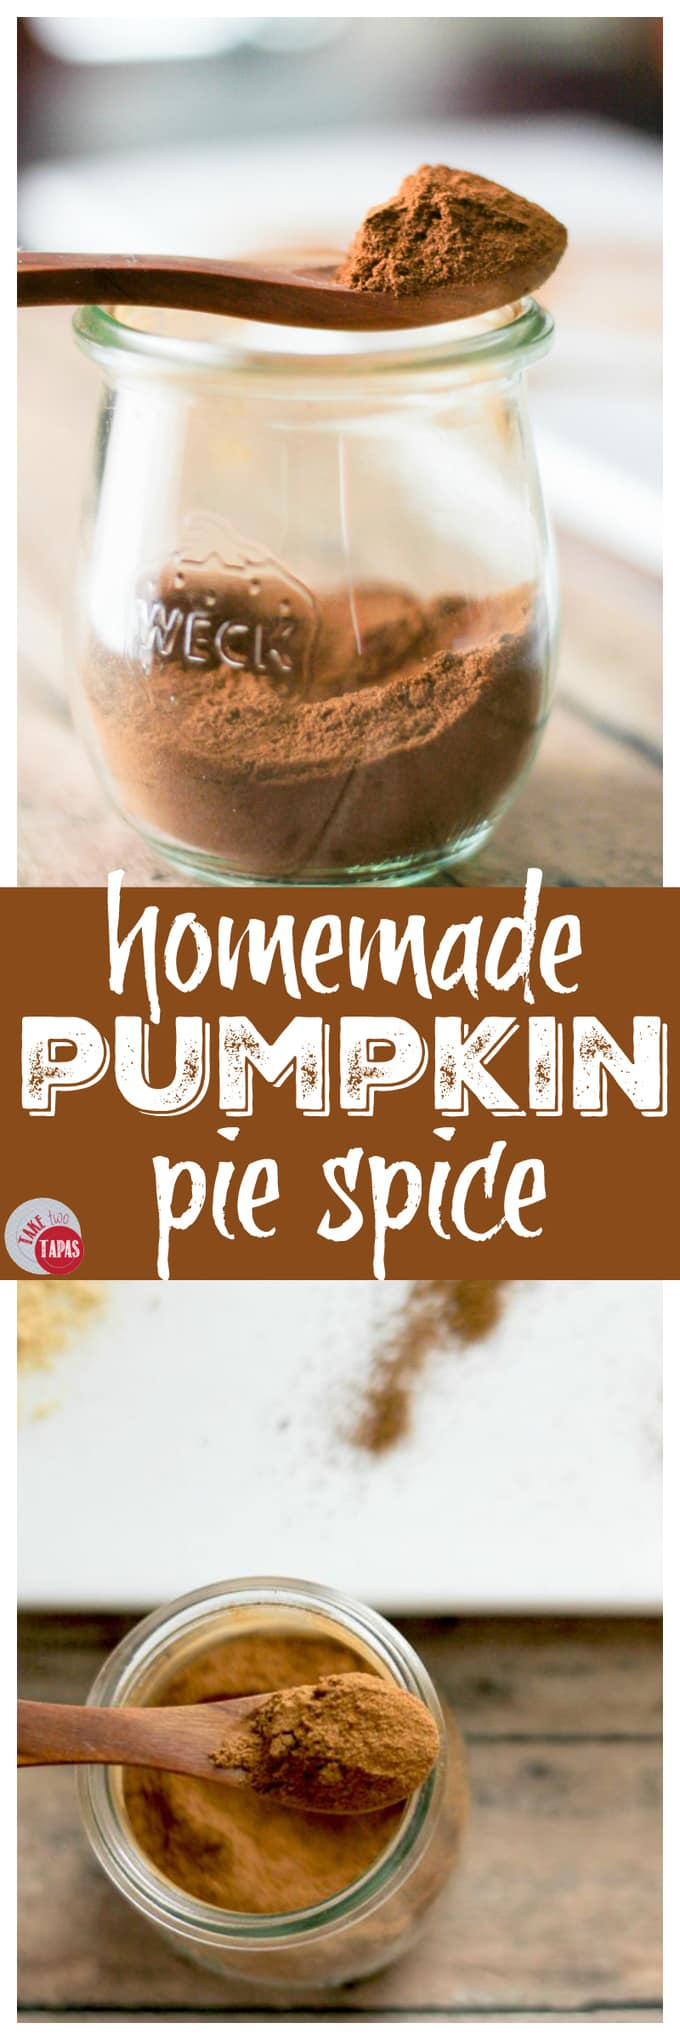 Homemade Pumpkin Pie Spice Mix | Take Two Tapas